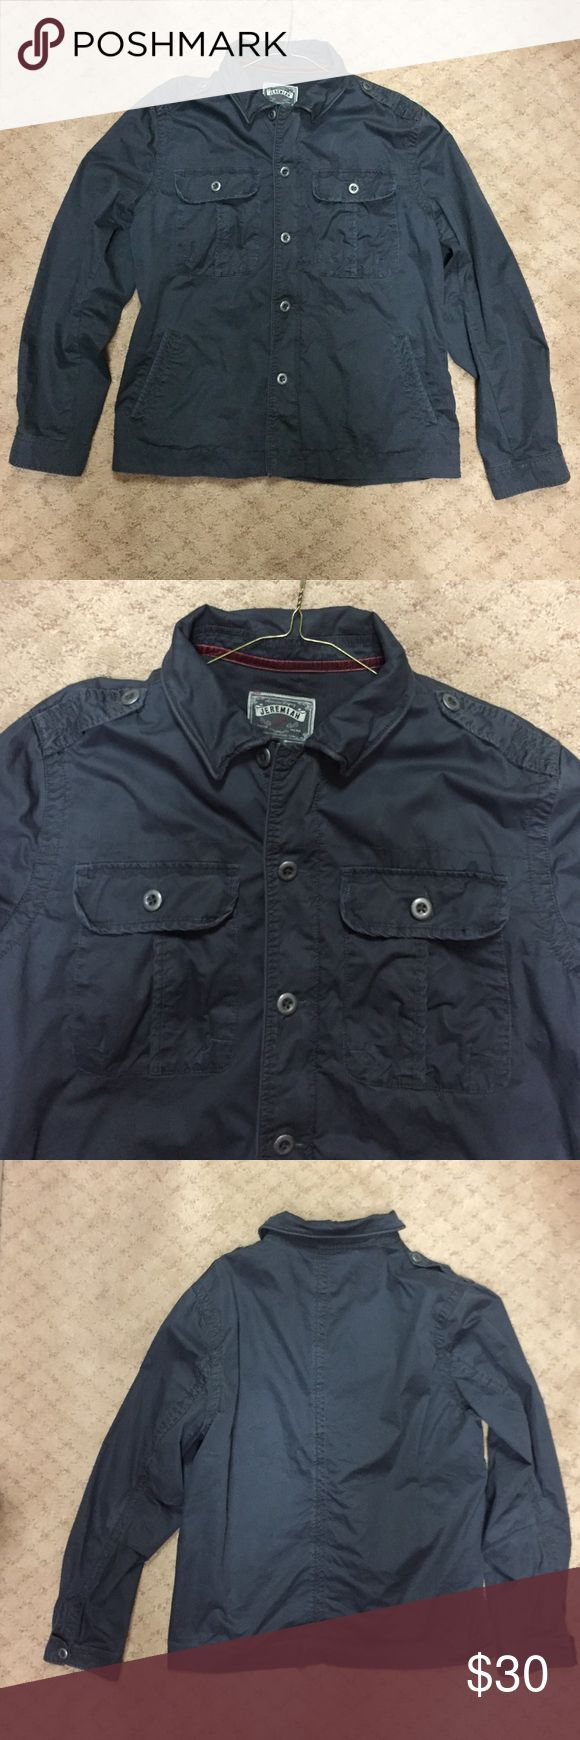 Mens faded black cargo-style lightweight jacket Jeremiah Mens faded black cargo-style lightweight jacket in size XL--like new condition! jeremiah Jackets & Coats Lightweight & Shirt Jackets